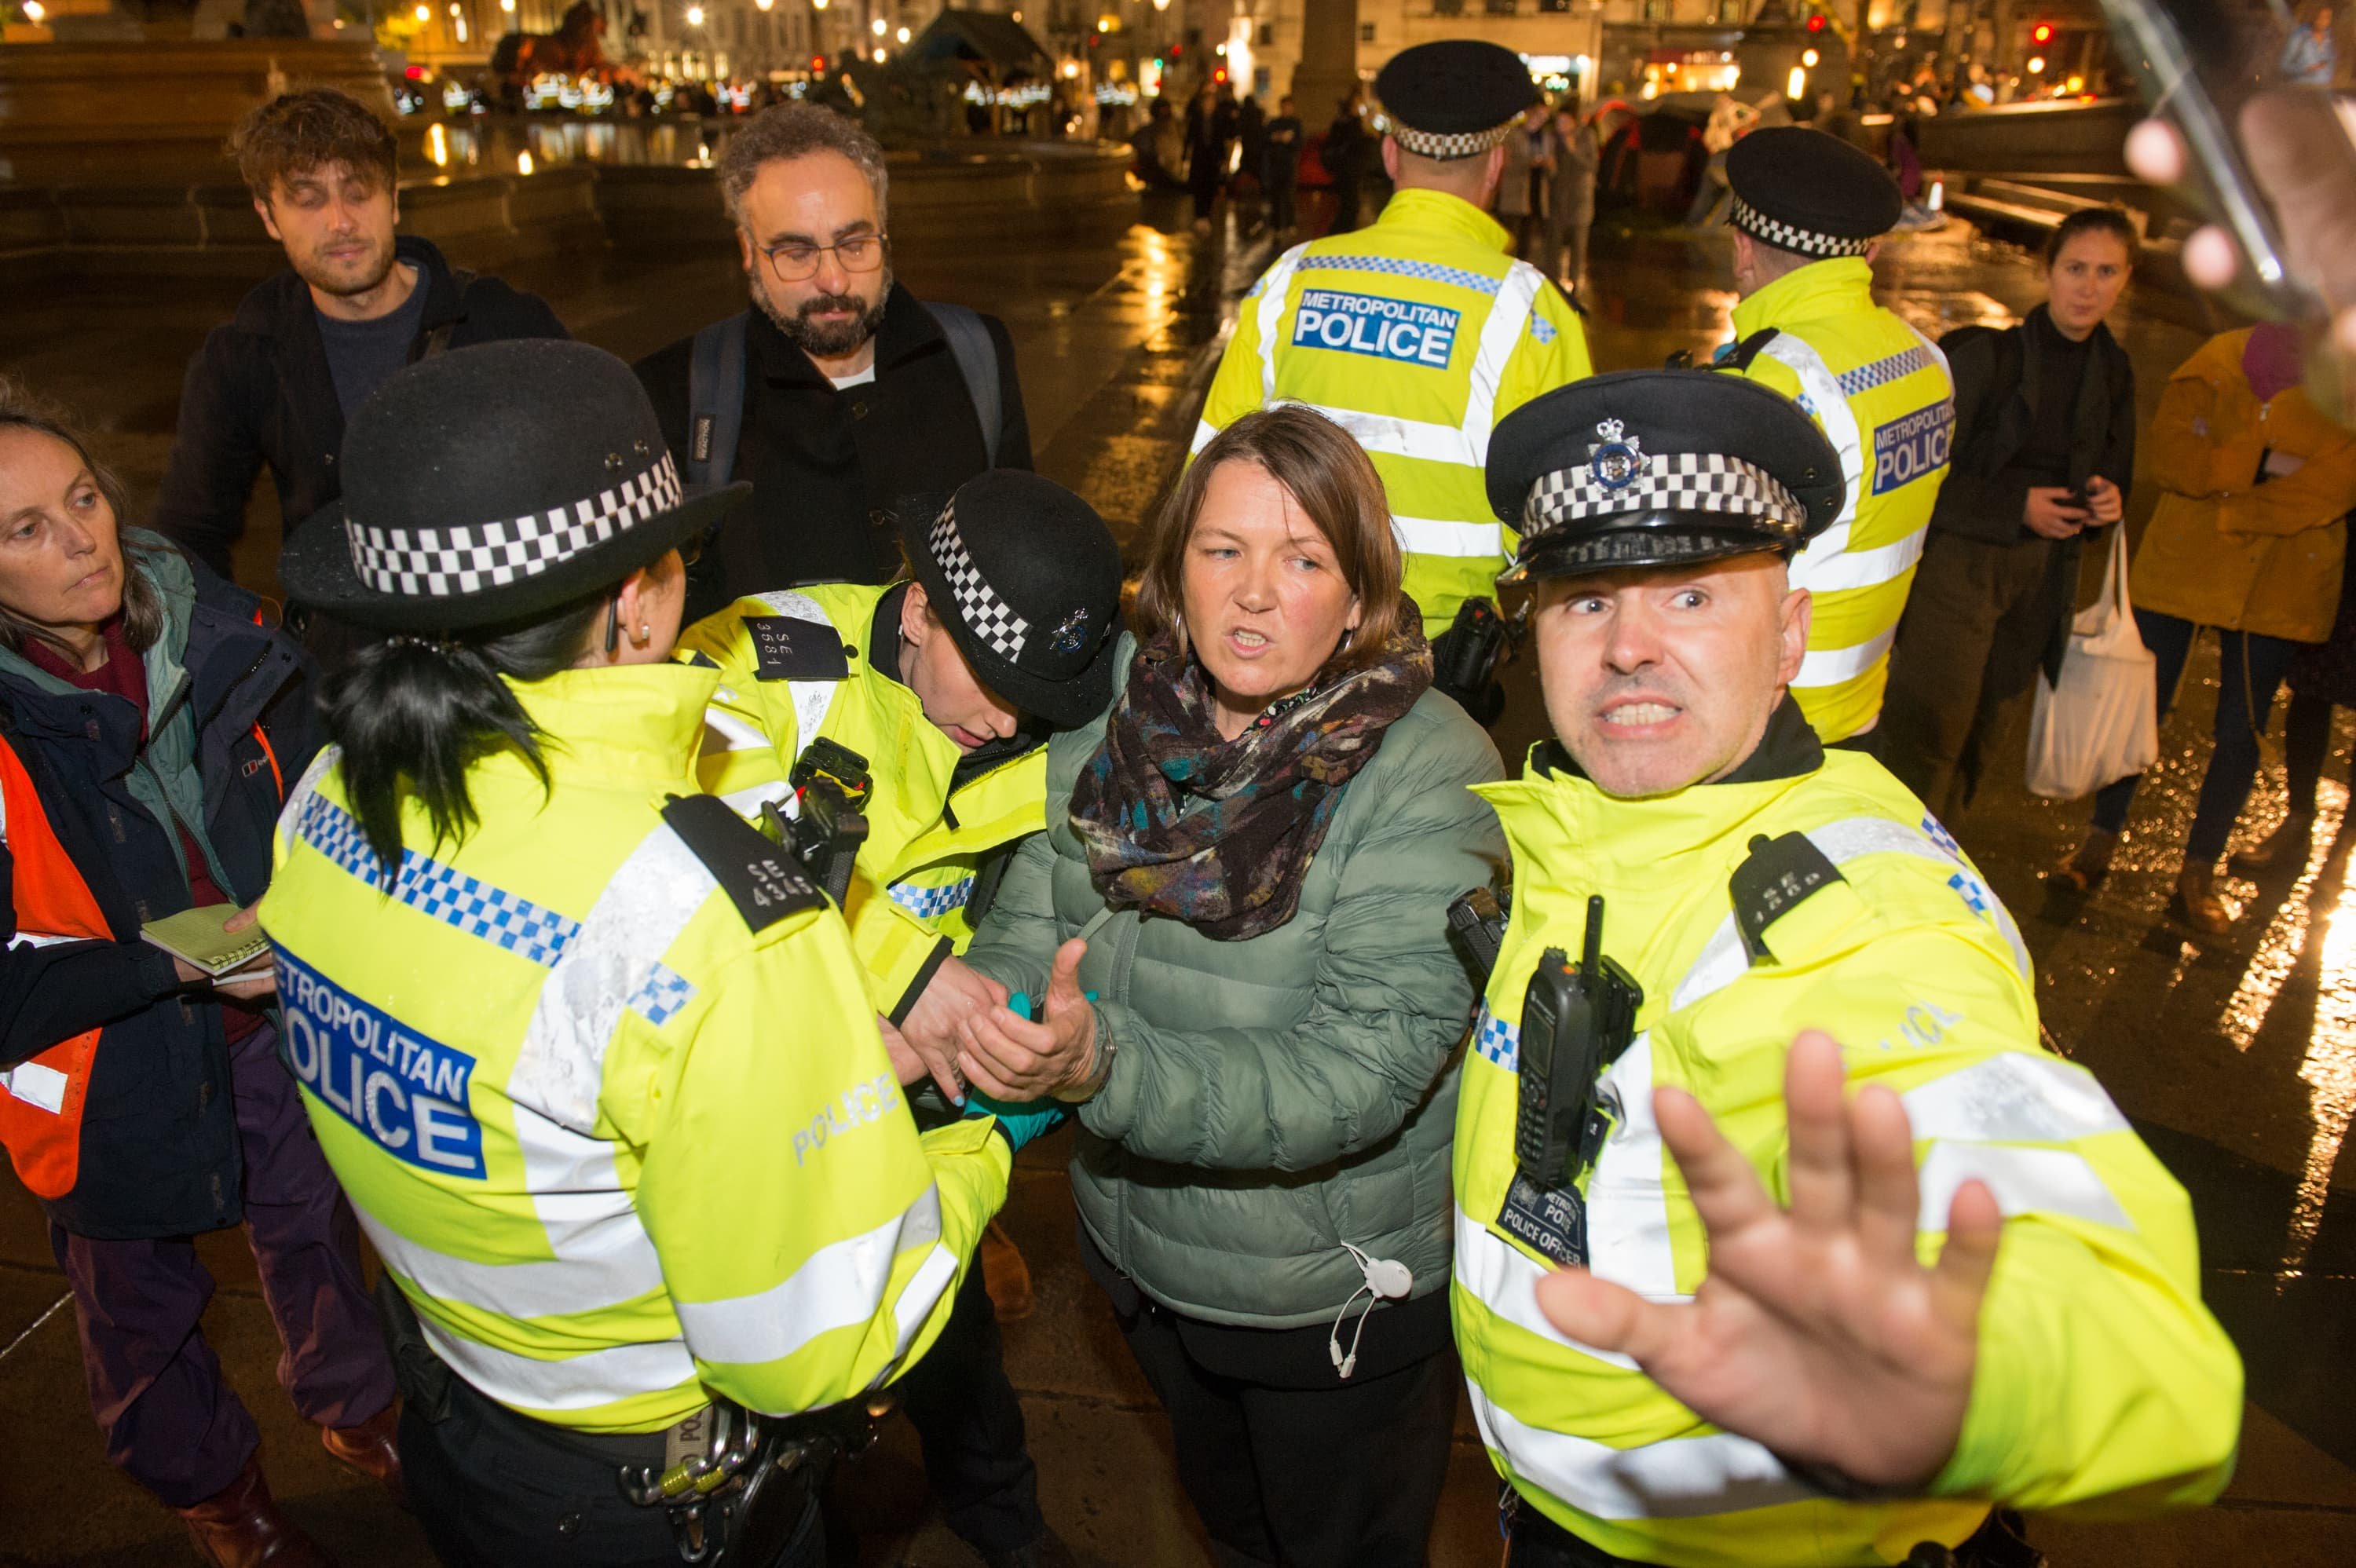 British police issue a city-wide ban on climate change protests in London